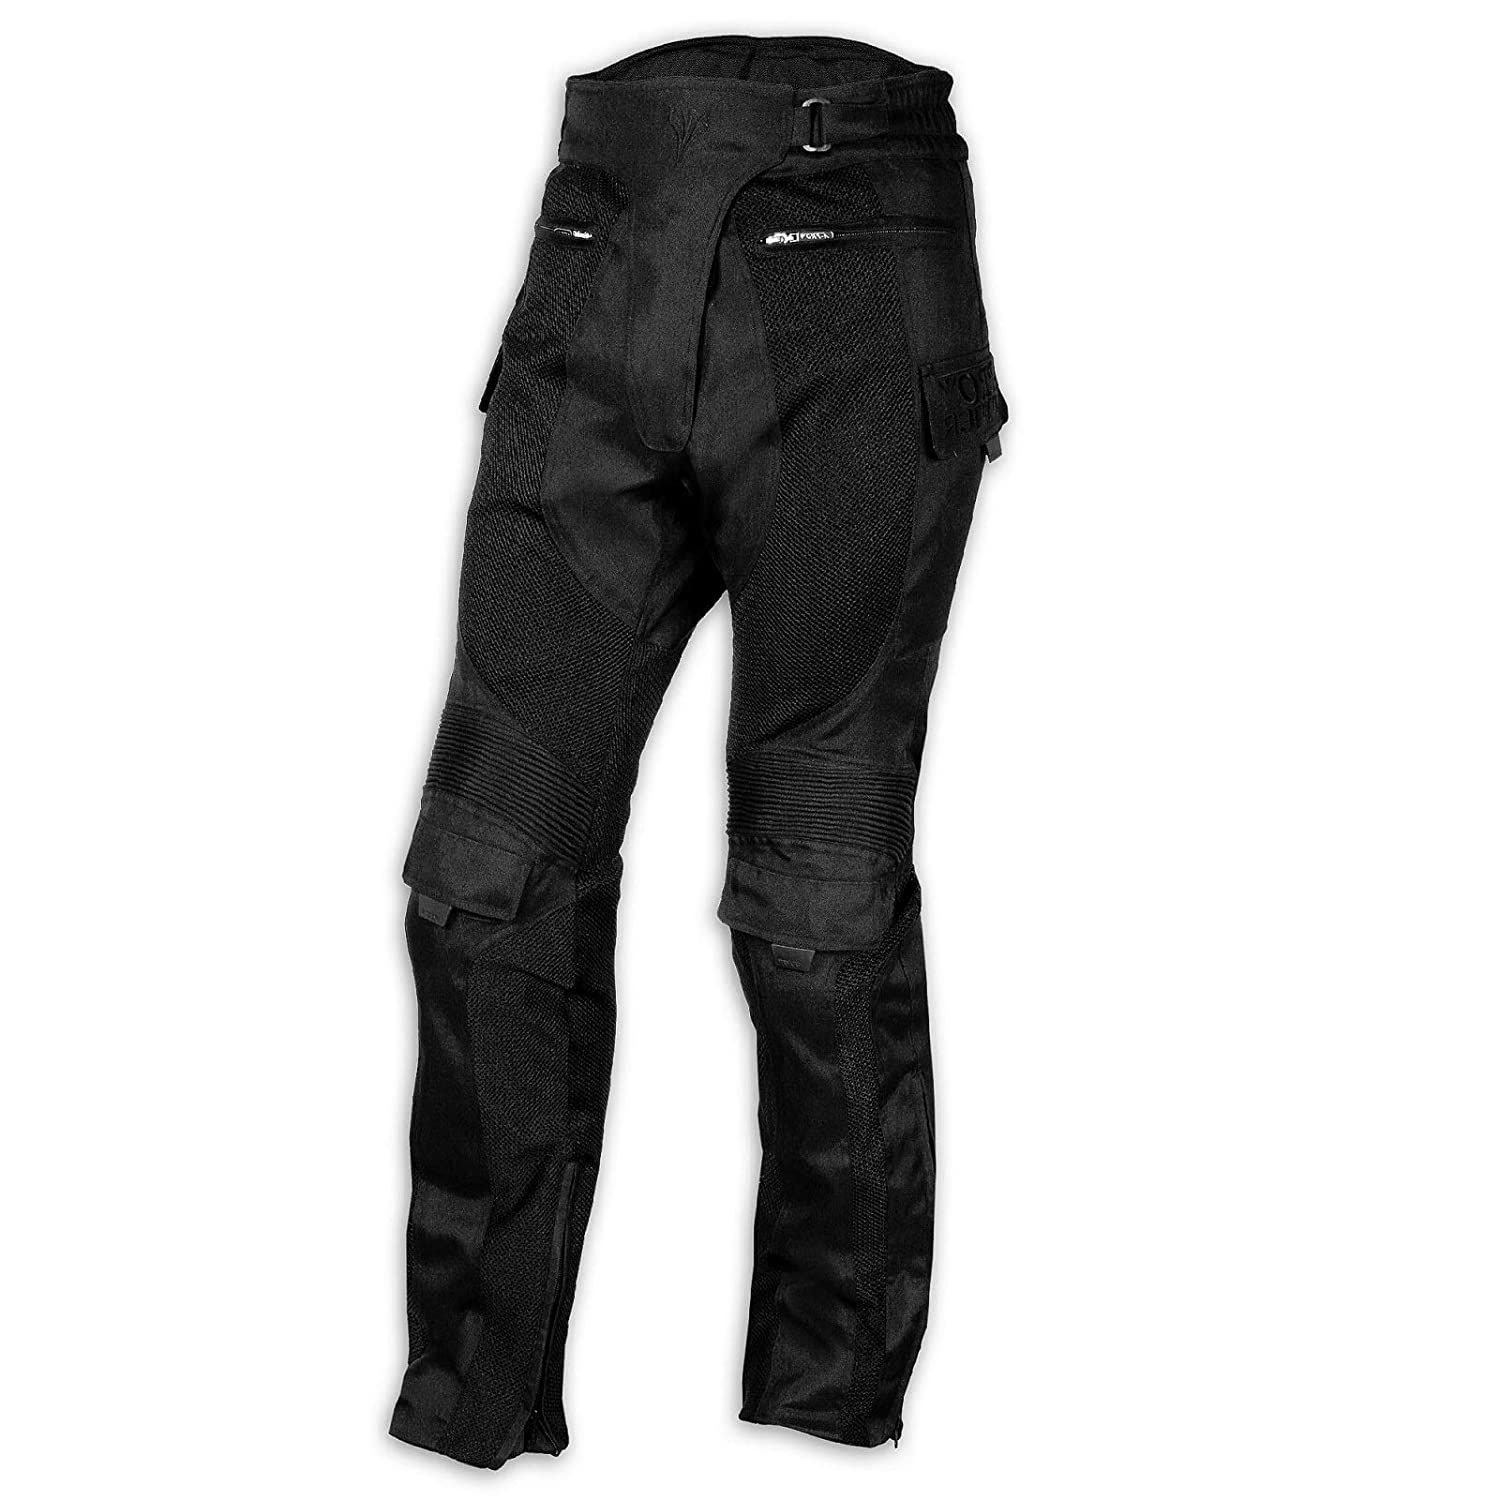 A-Pro CE Armored Motorcycle Motor Bike Waterproof Textile Mesh Lady Trousers Lady 30